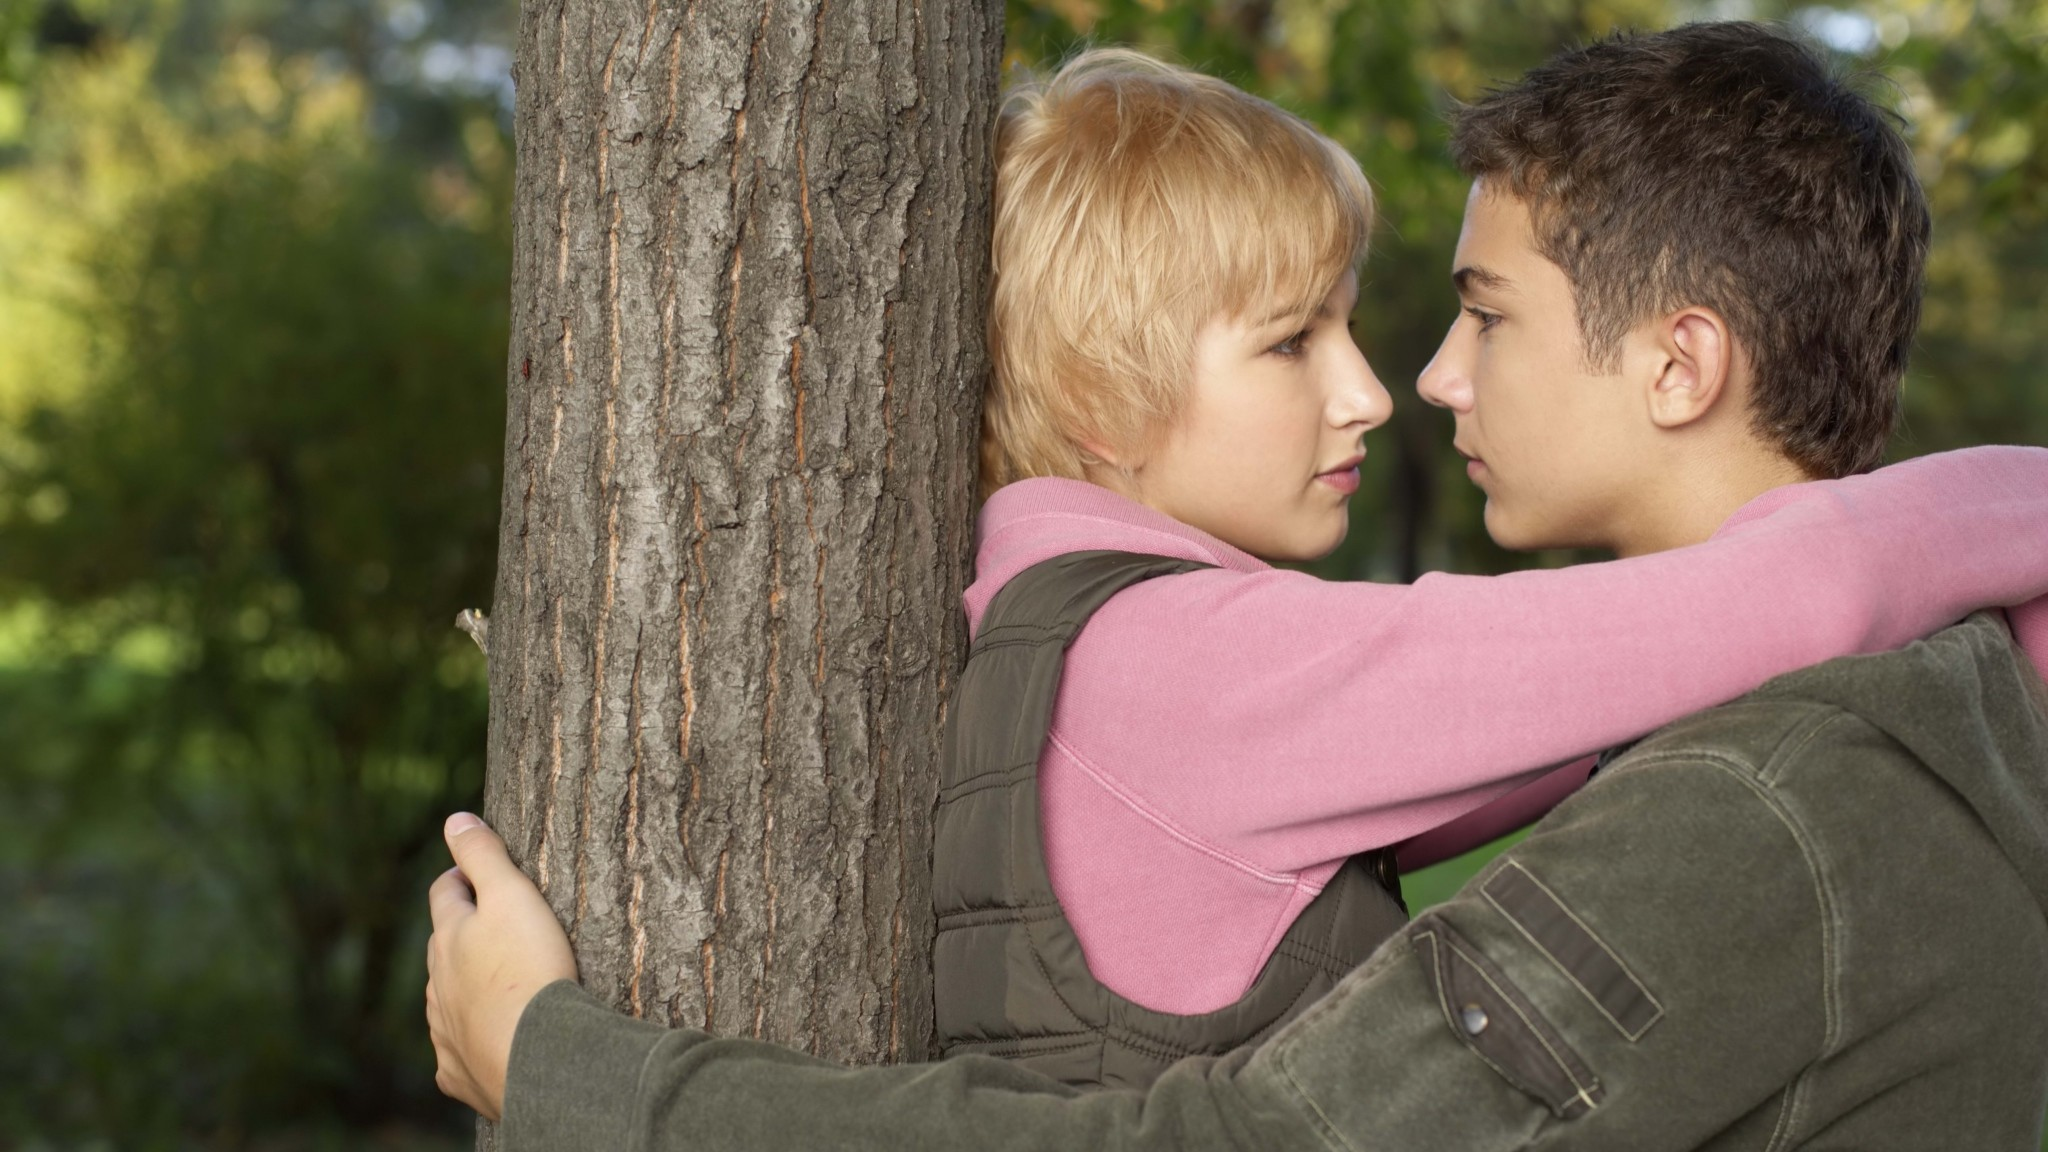 Sad Boy And Girl Full Hd Wallpaper Boy And Girl Wallpapers 70 Images